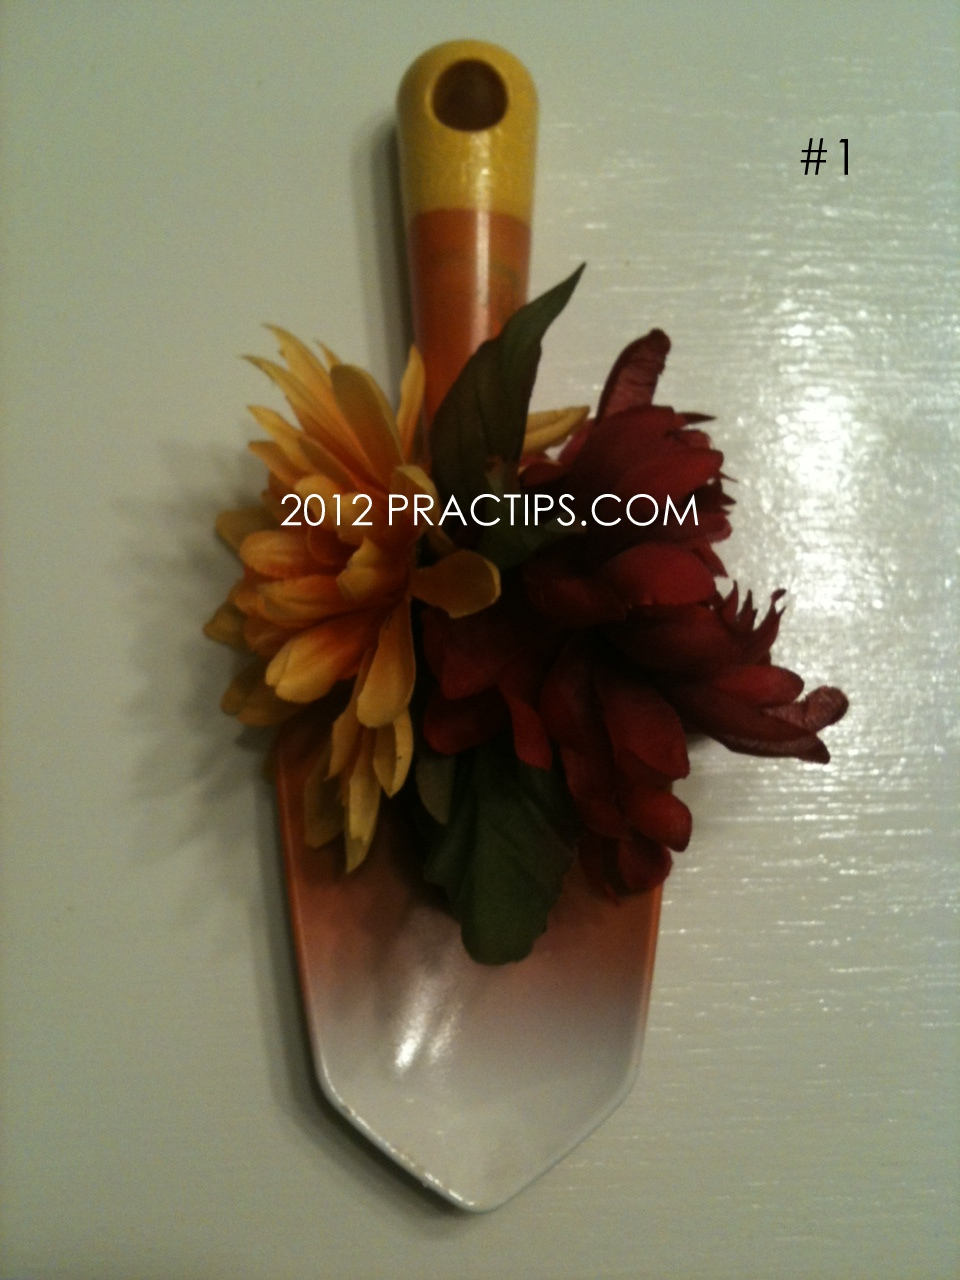 Practips: Shovel in a Great Fall Craft